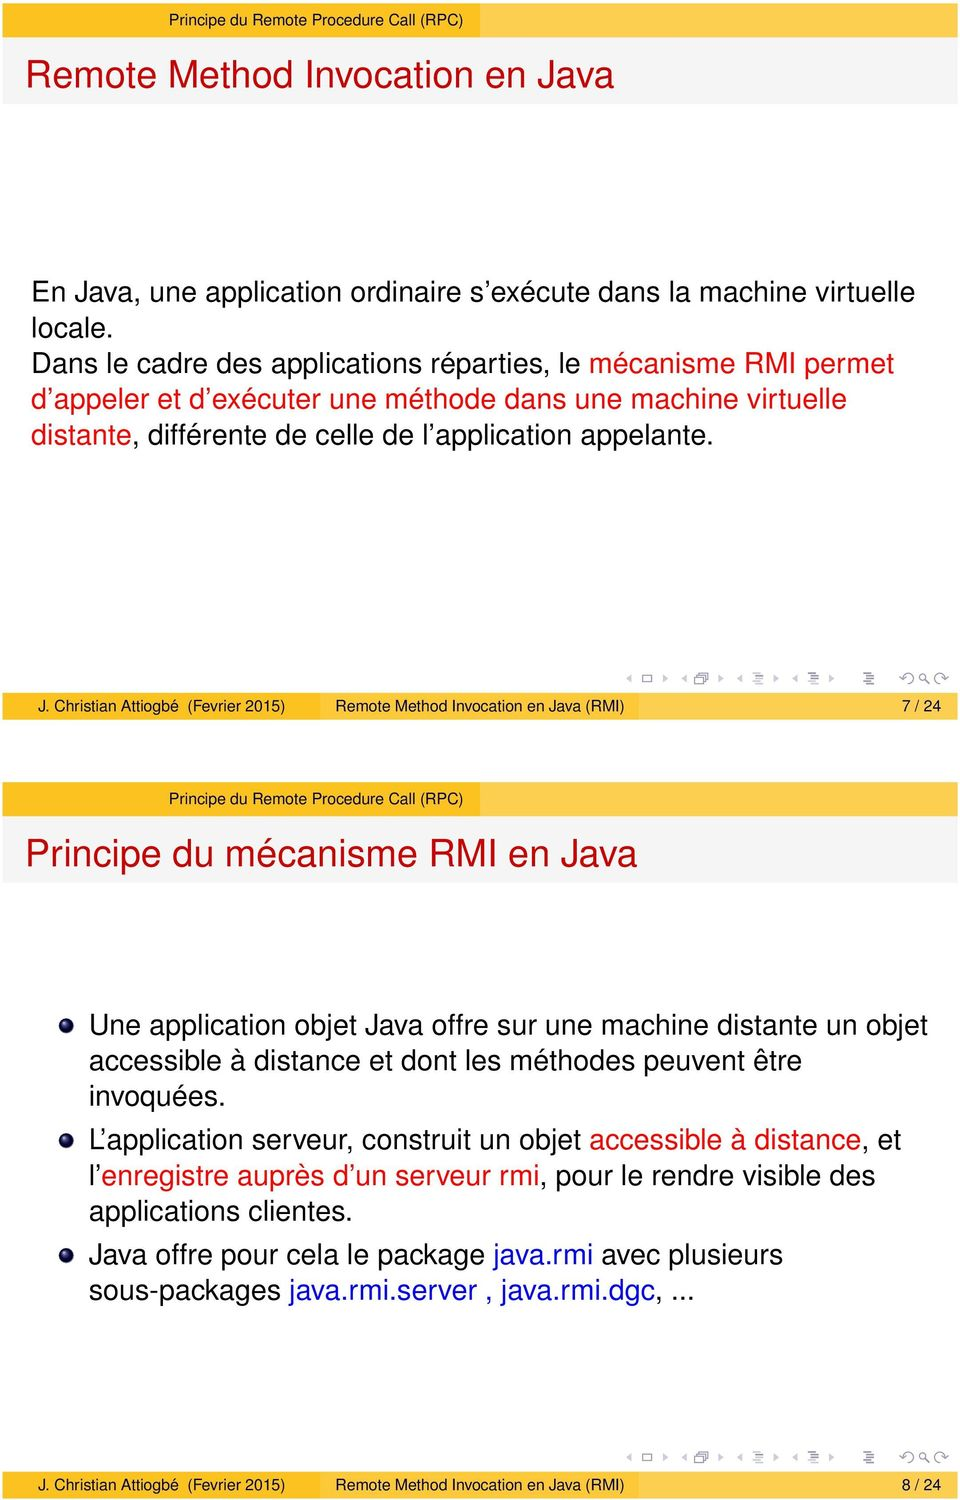 Christian Attiogbé (Fevrier 2015) Remote Method Invocation en Java (RMI) 7 / 24 Principe du mécanisme RMI en Java Une application objet Java offre sur une machine distante un objet accessible à